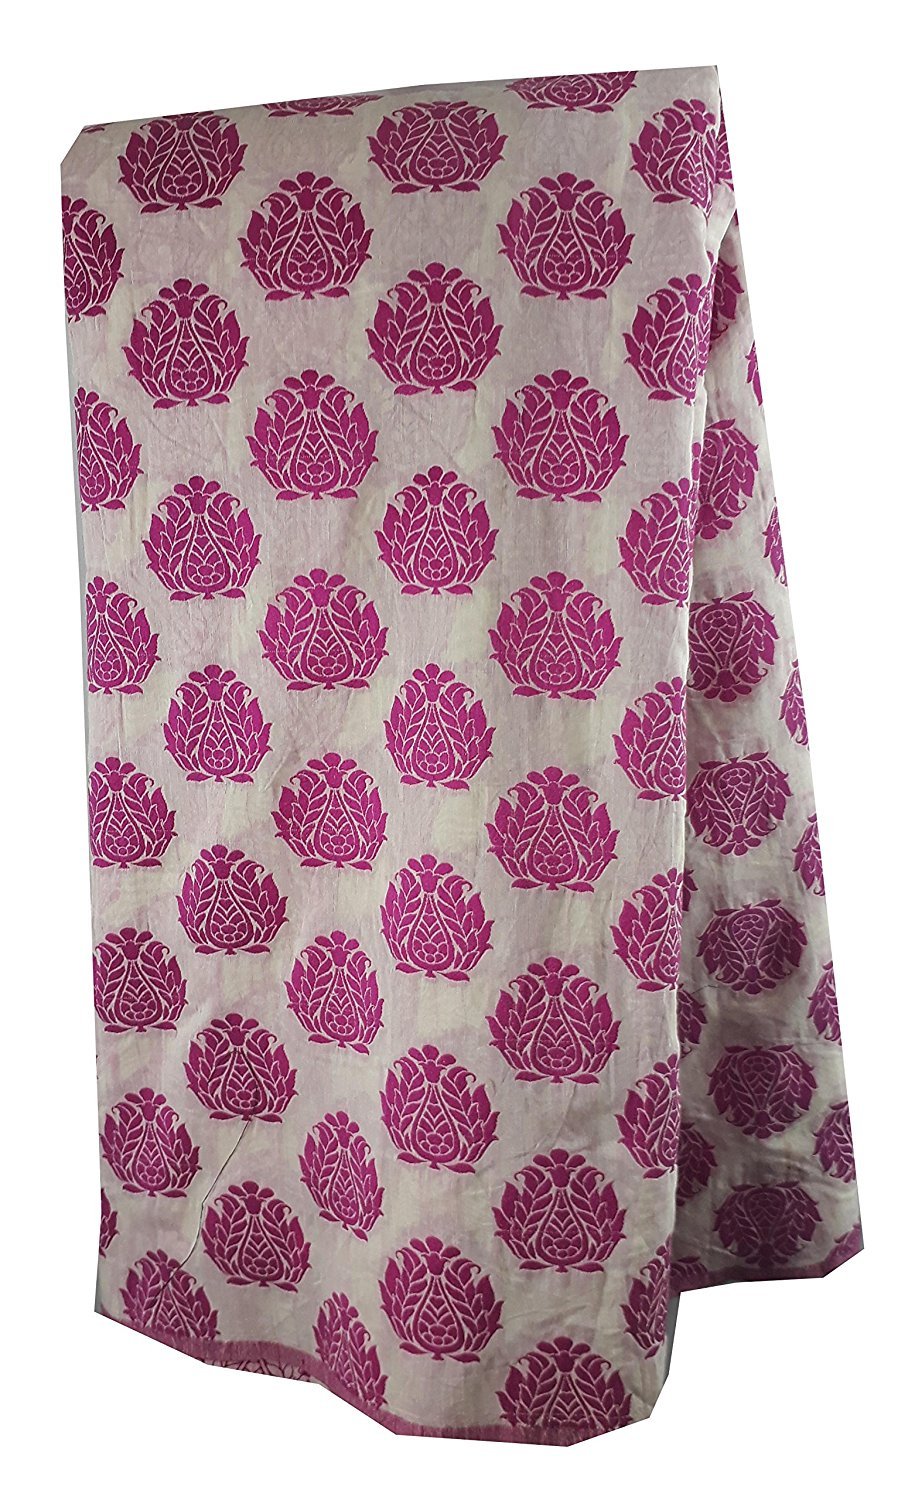 fabric sale online india kurti fabric online Woven Polycotton Fauchia Pink, Rani Pink, White 46 inches Wide 8038